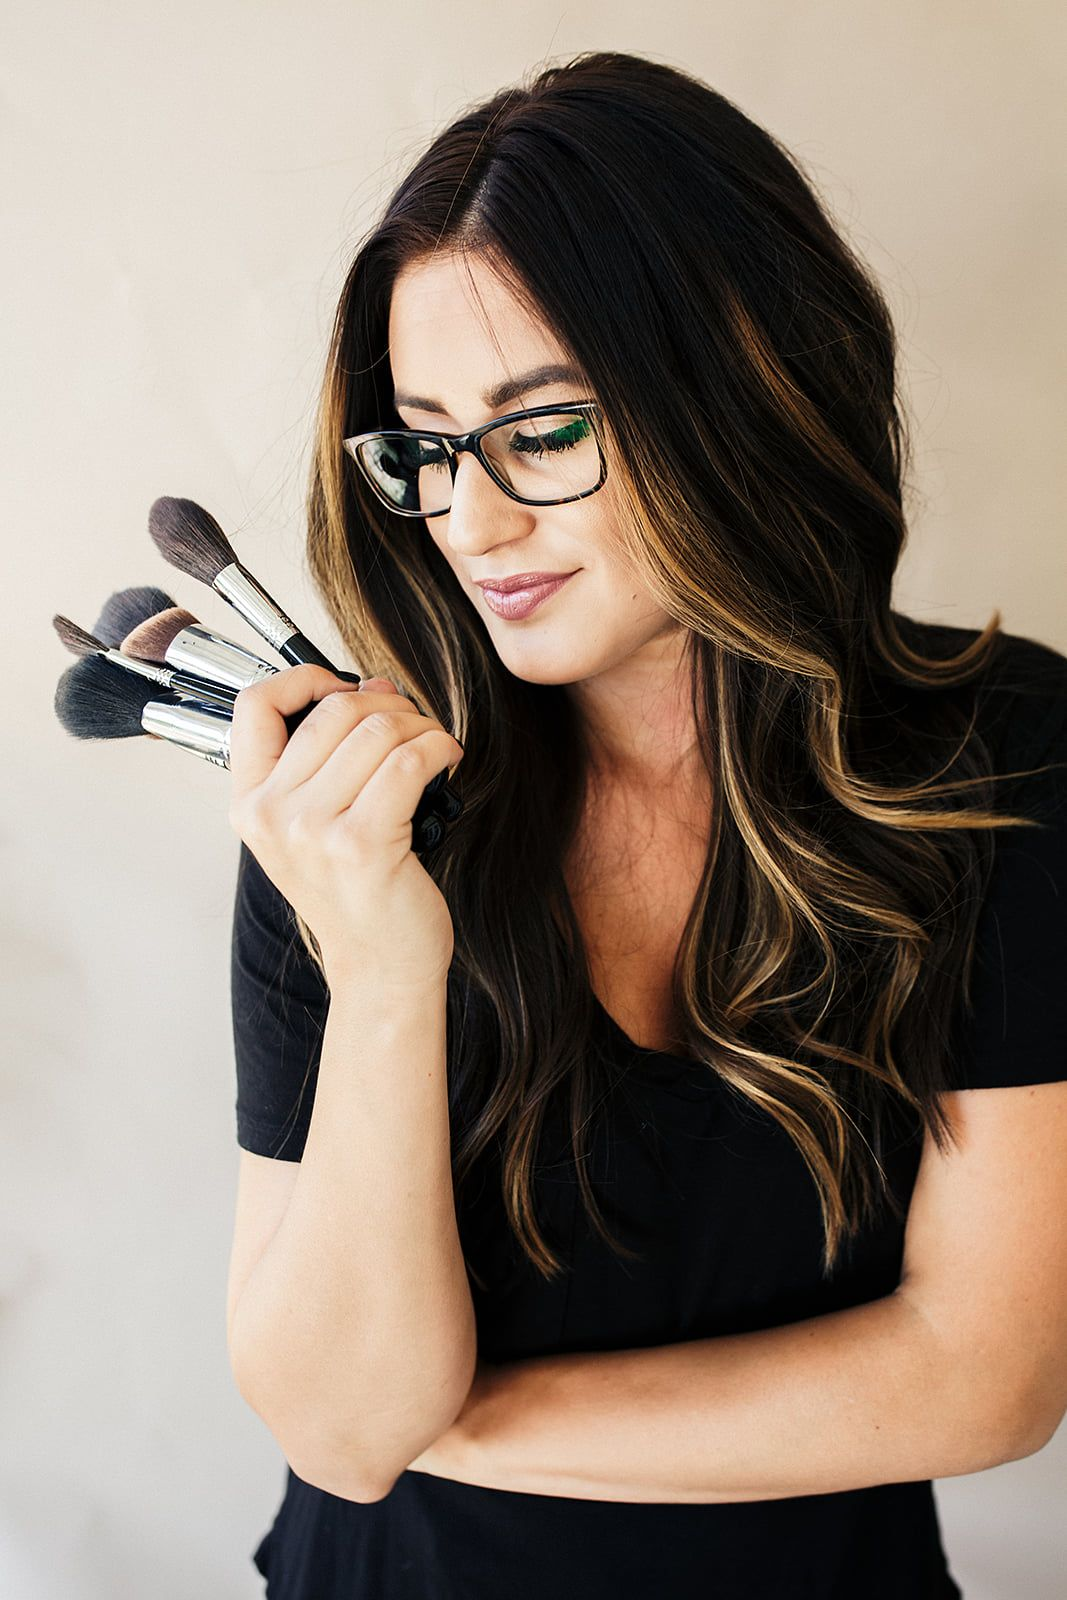 Learn tips + tricks from Mario Lopez's exmakeup artist.